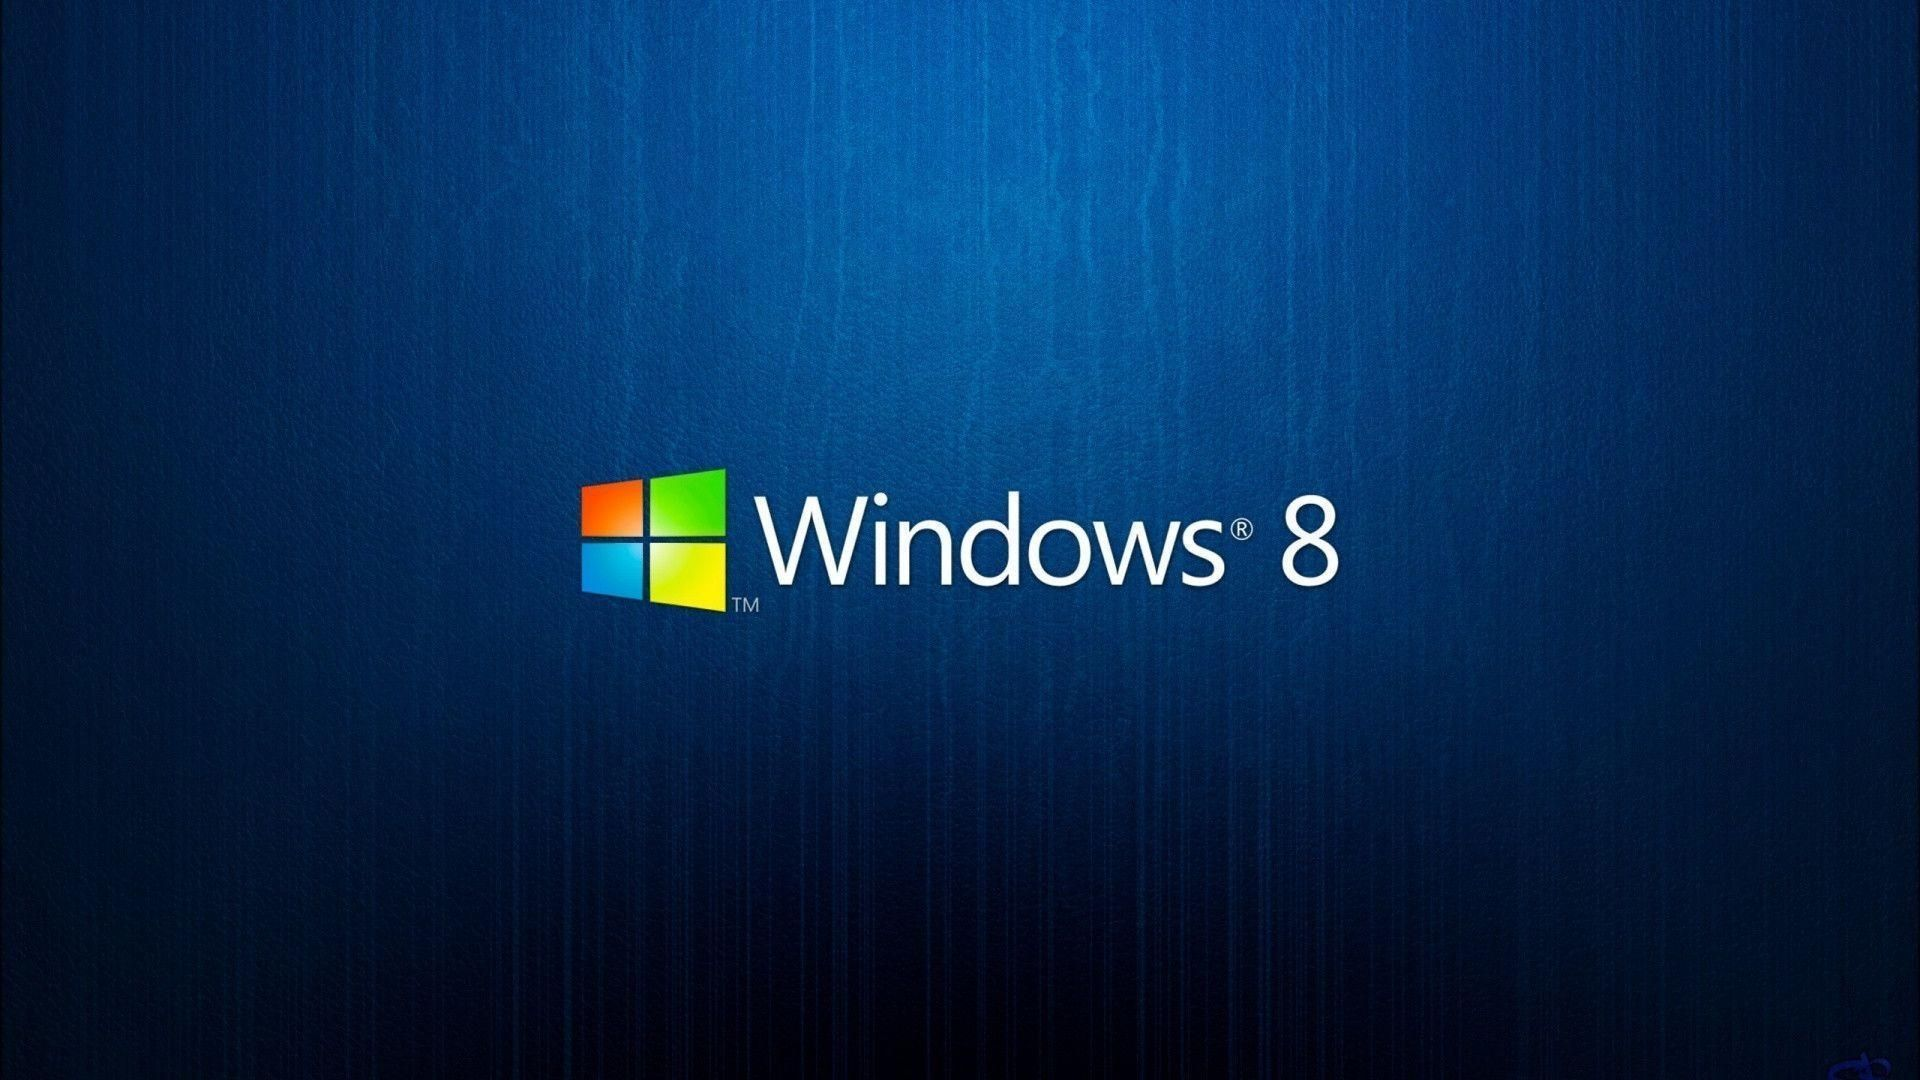 10 Best Windows 8 Wallpaper 1920x1080 Full Hd 1080p For Pc Background Windows 8 Best Windows Windows